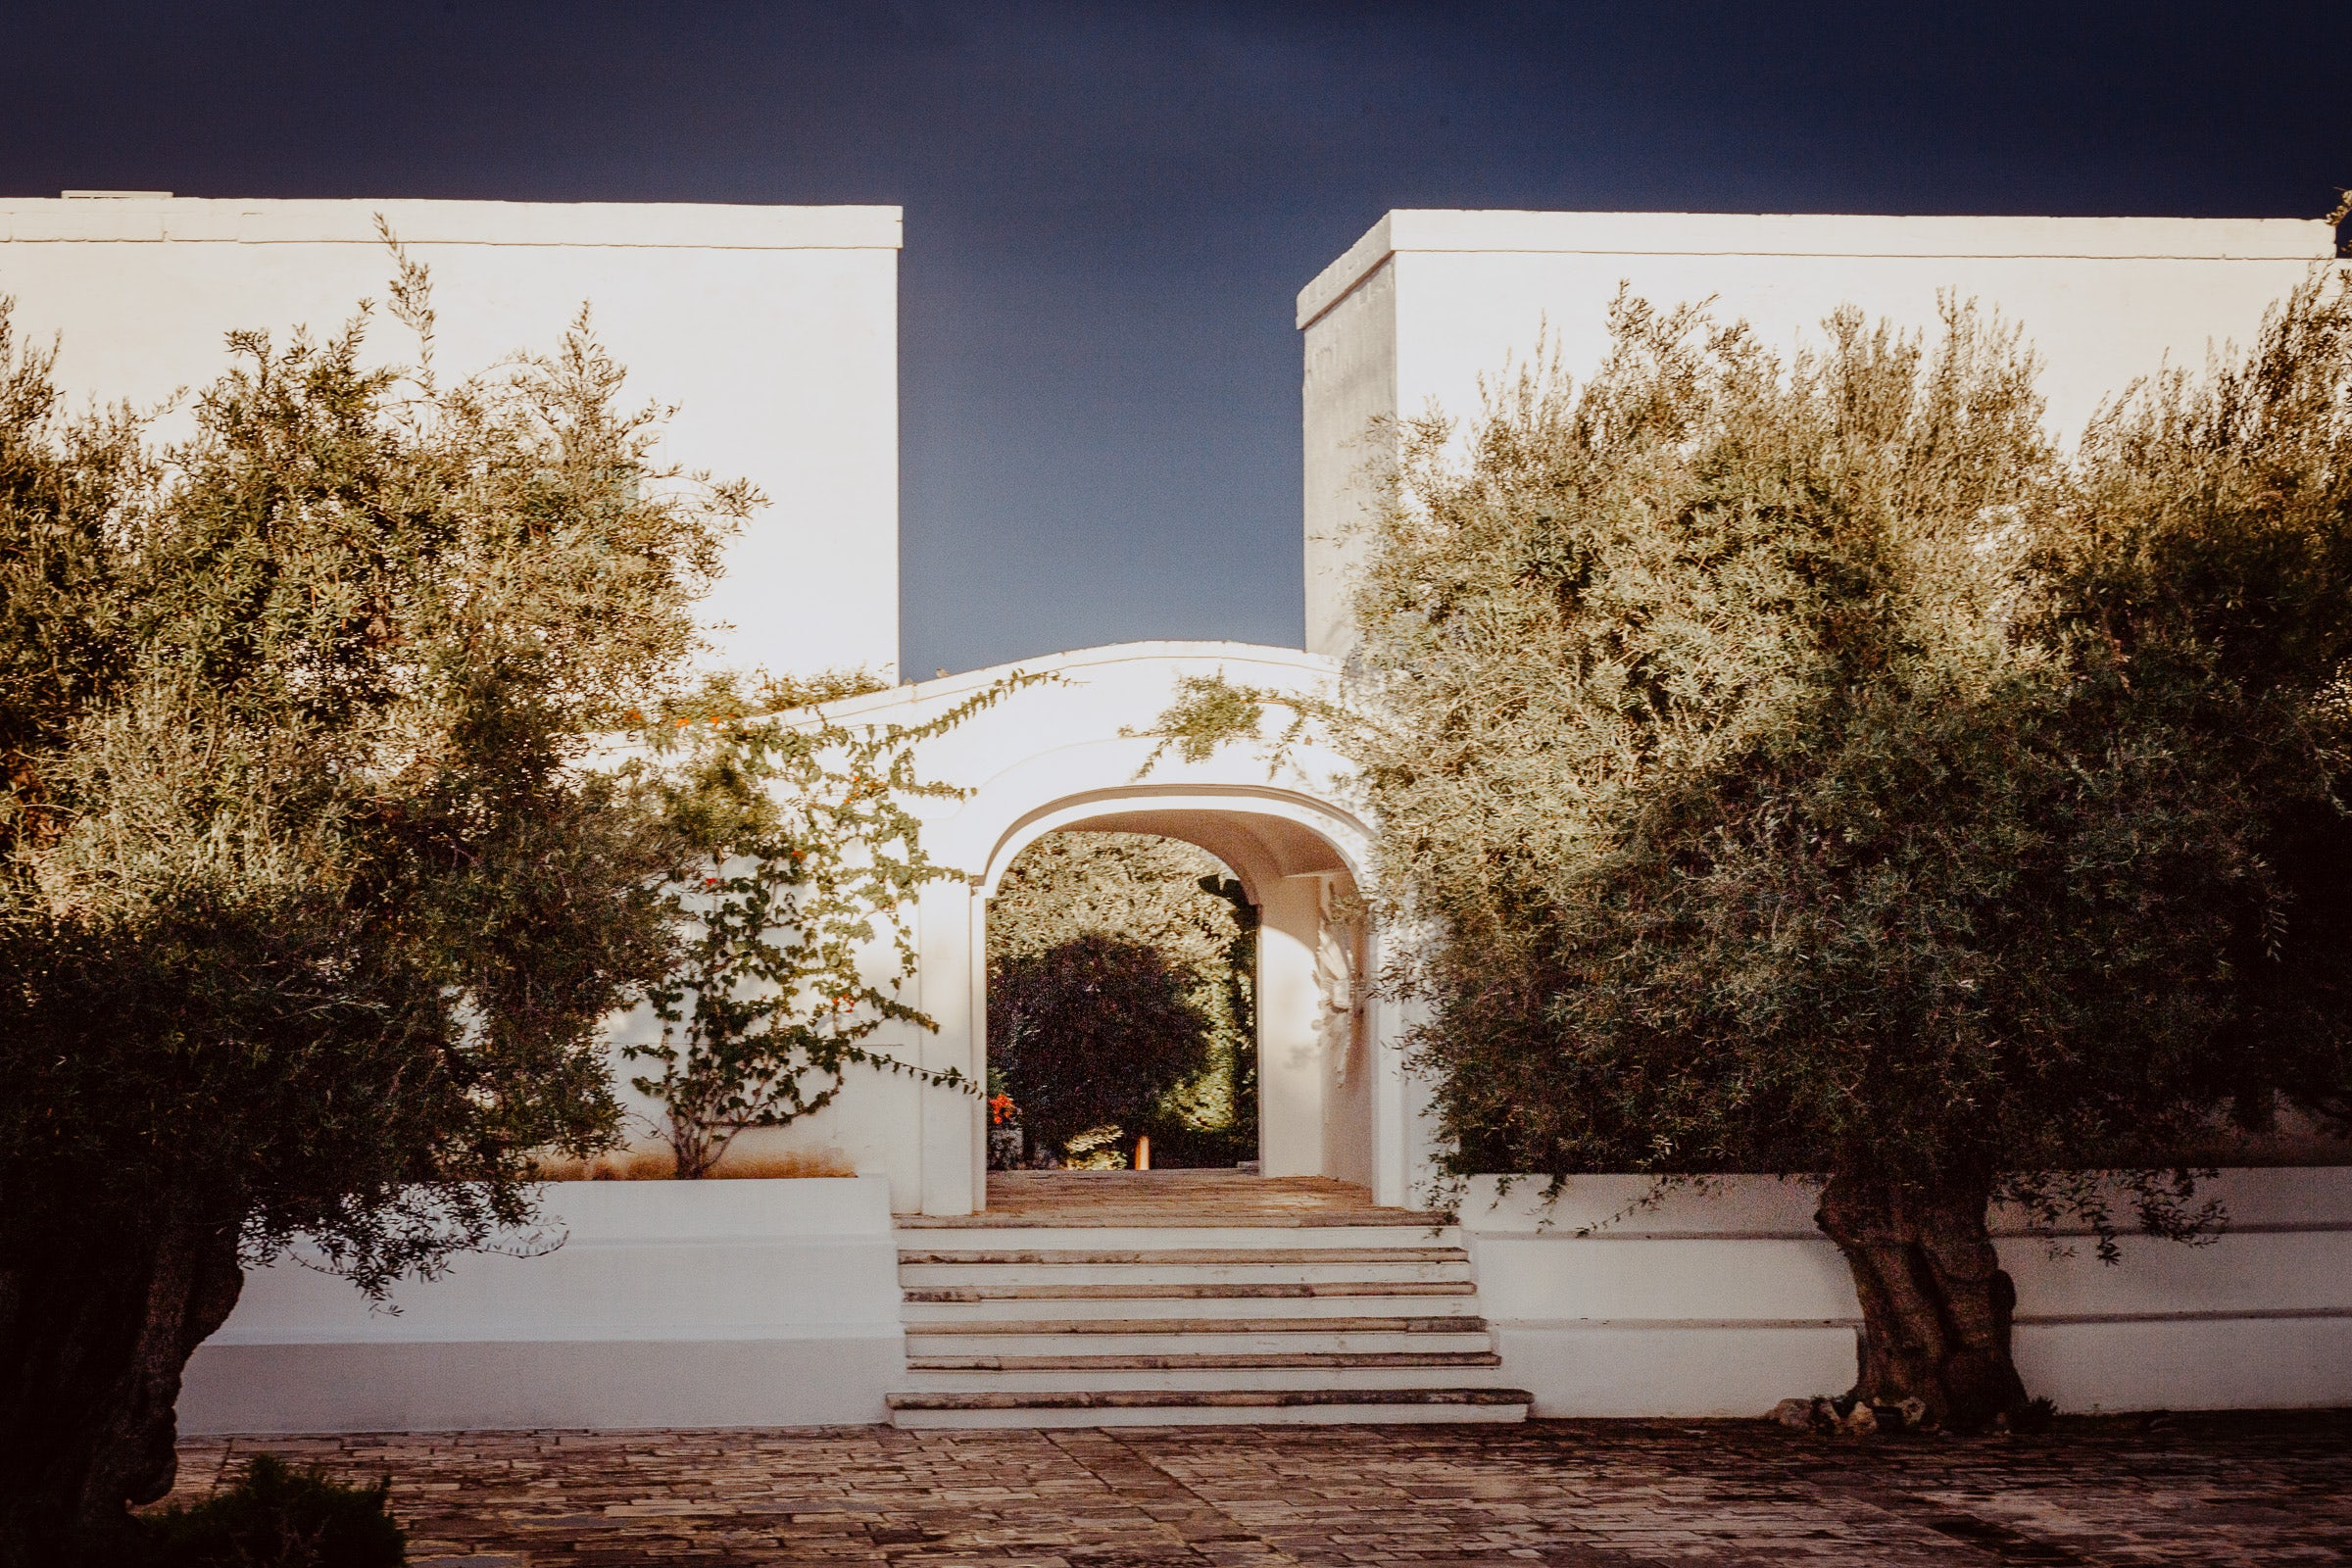 Whitewashed towns with magical boutique hotels